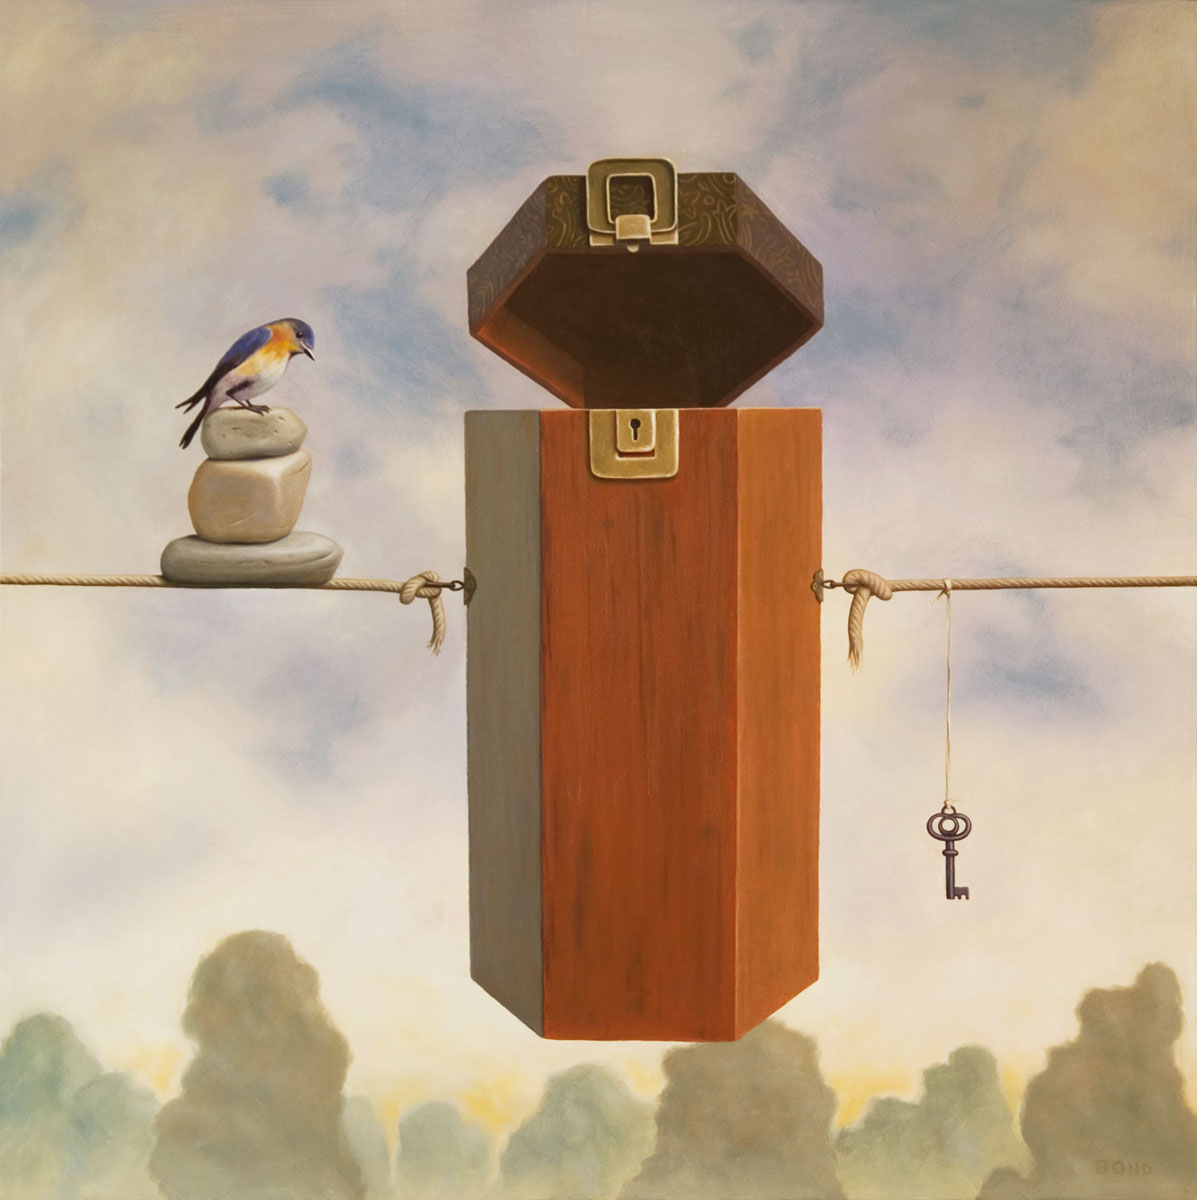 Clairvoyance, painting of a wooden box strung in the air with rope with a bird on stacked stones on one side and a key dangling on the other,cairn, zen, bird, rocks, key, balance, balance, cairn, stones, psychic, seek, trompe l'oeil, soulful uplifting inspirational art, soul stirring illusion art, romantic art,  surrealism, surreal art, dreamlike imagery, fanciful art, fantasy art, dreamscape visual, metaphysical art, spiritual painting, metaphysical painting, spiritual art, whimsical art, whimsy art, dream art, fantastic realism art, magic realism oil painting by Paul Bond